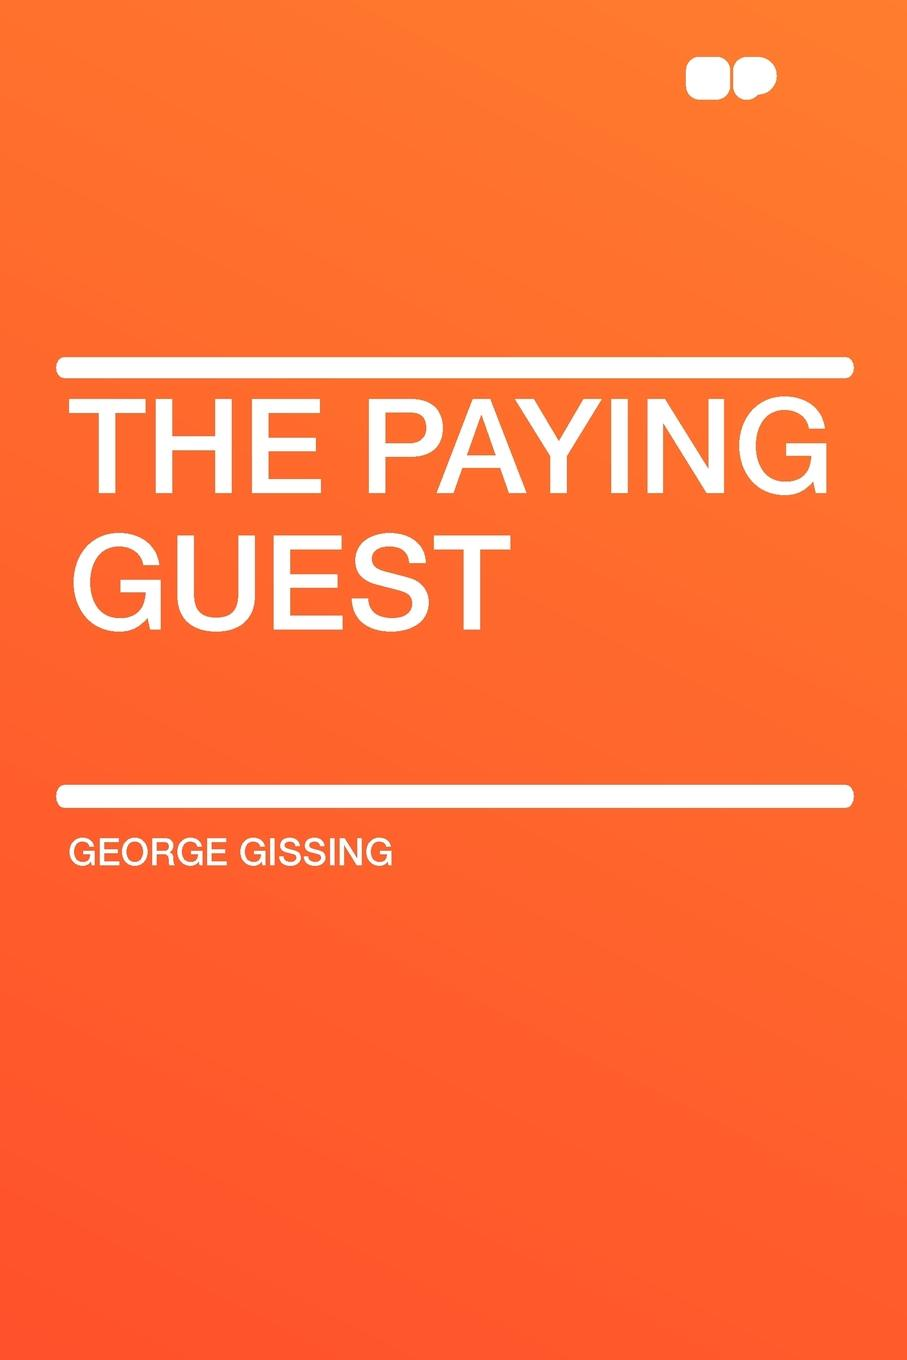 Gissing George The Paying Guest guest